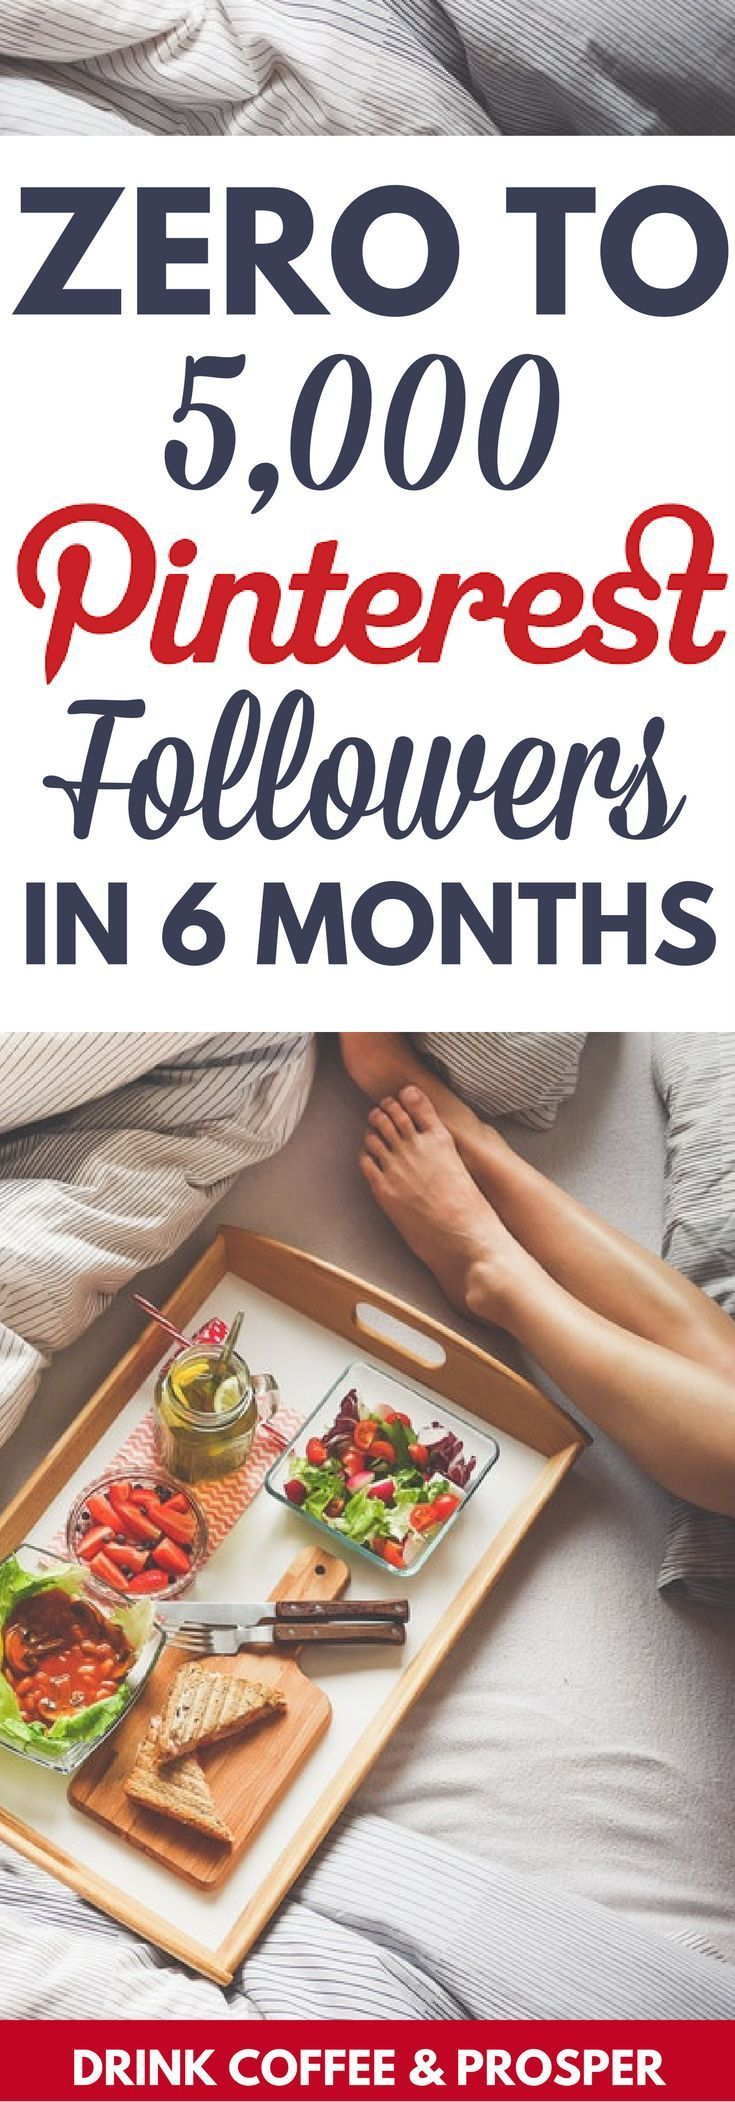 How I Went Zero to 5,000 followers on Pinterest in 6 months | grow social media following | get pinterest followers | how to get pinterest followers | get pinterest followers fast | grow social media following fast | how to get 5000 followers | http://drinkcoffeeandprosper.com